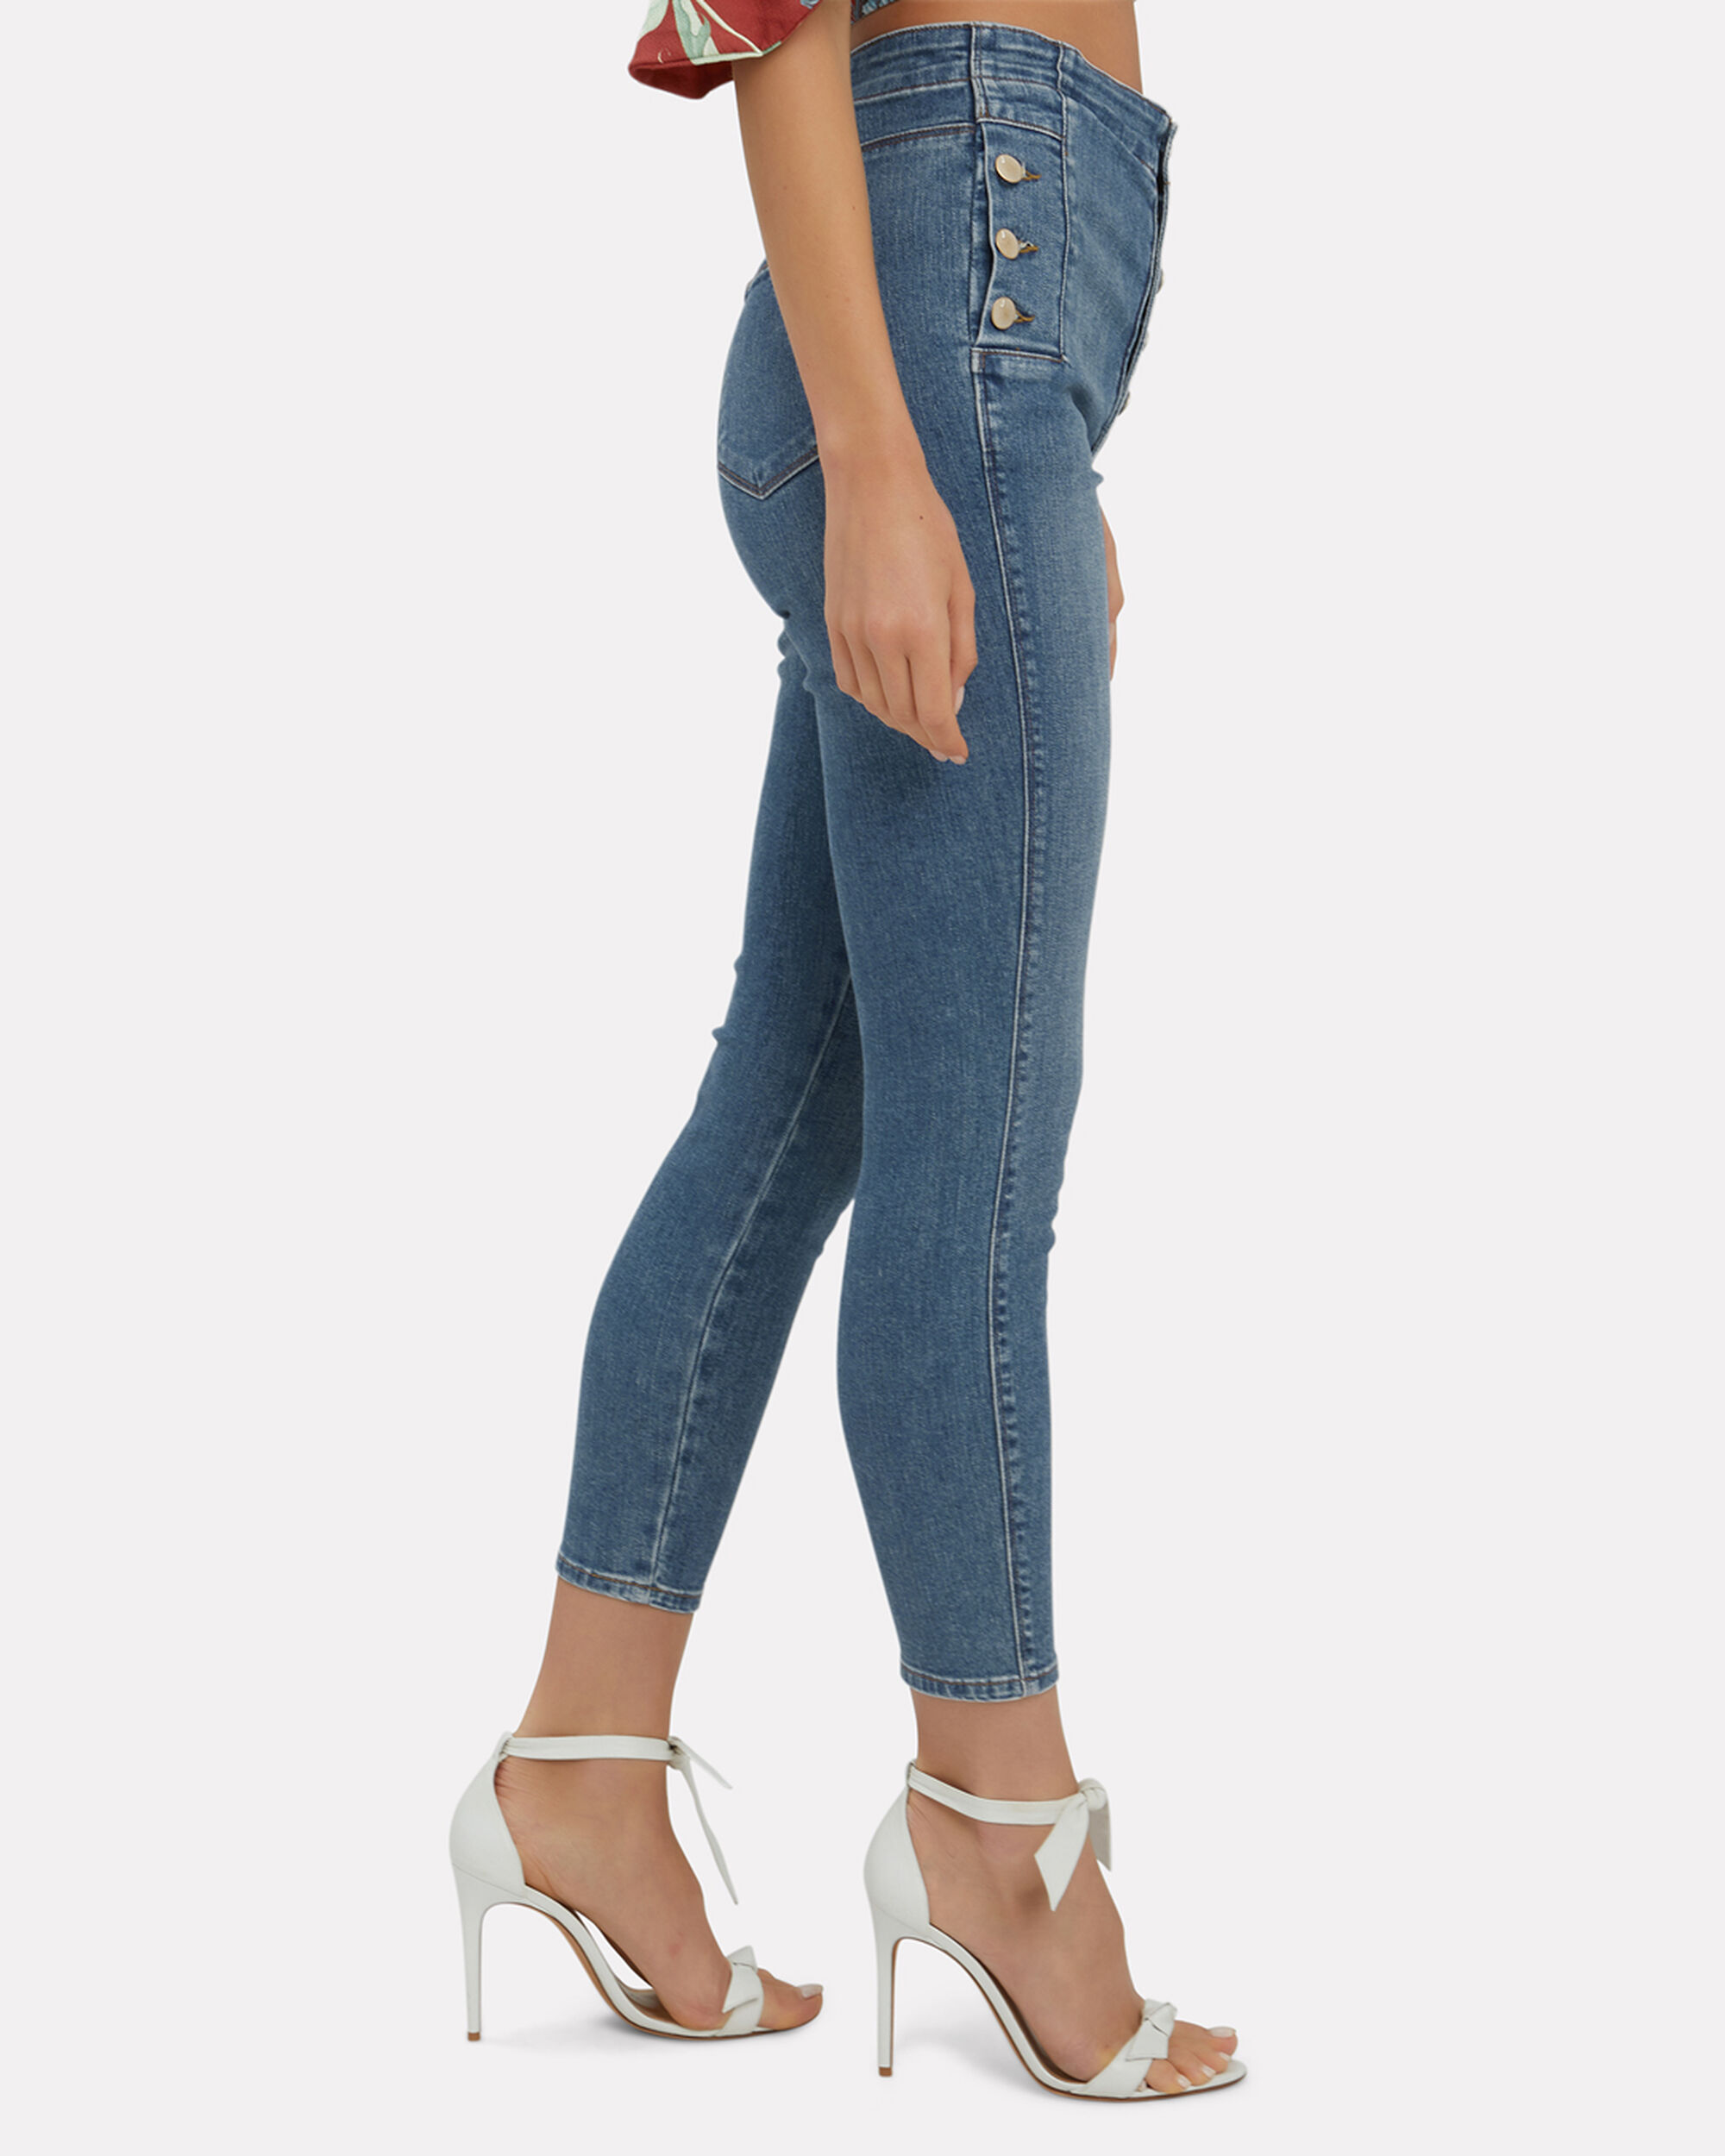 Natasha Light Blue Cropped Skinny Jeans, LIGHT BLUE DENIM, hi-res